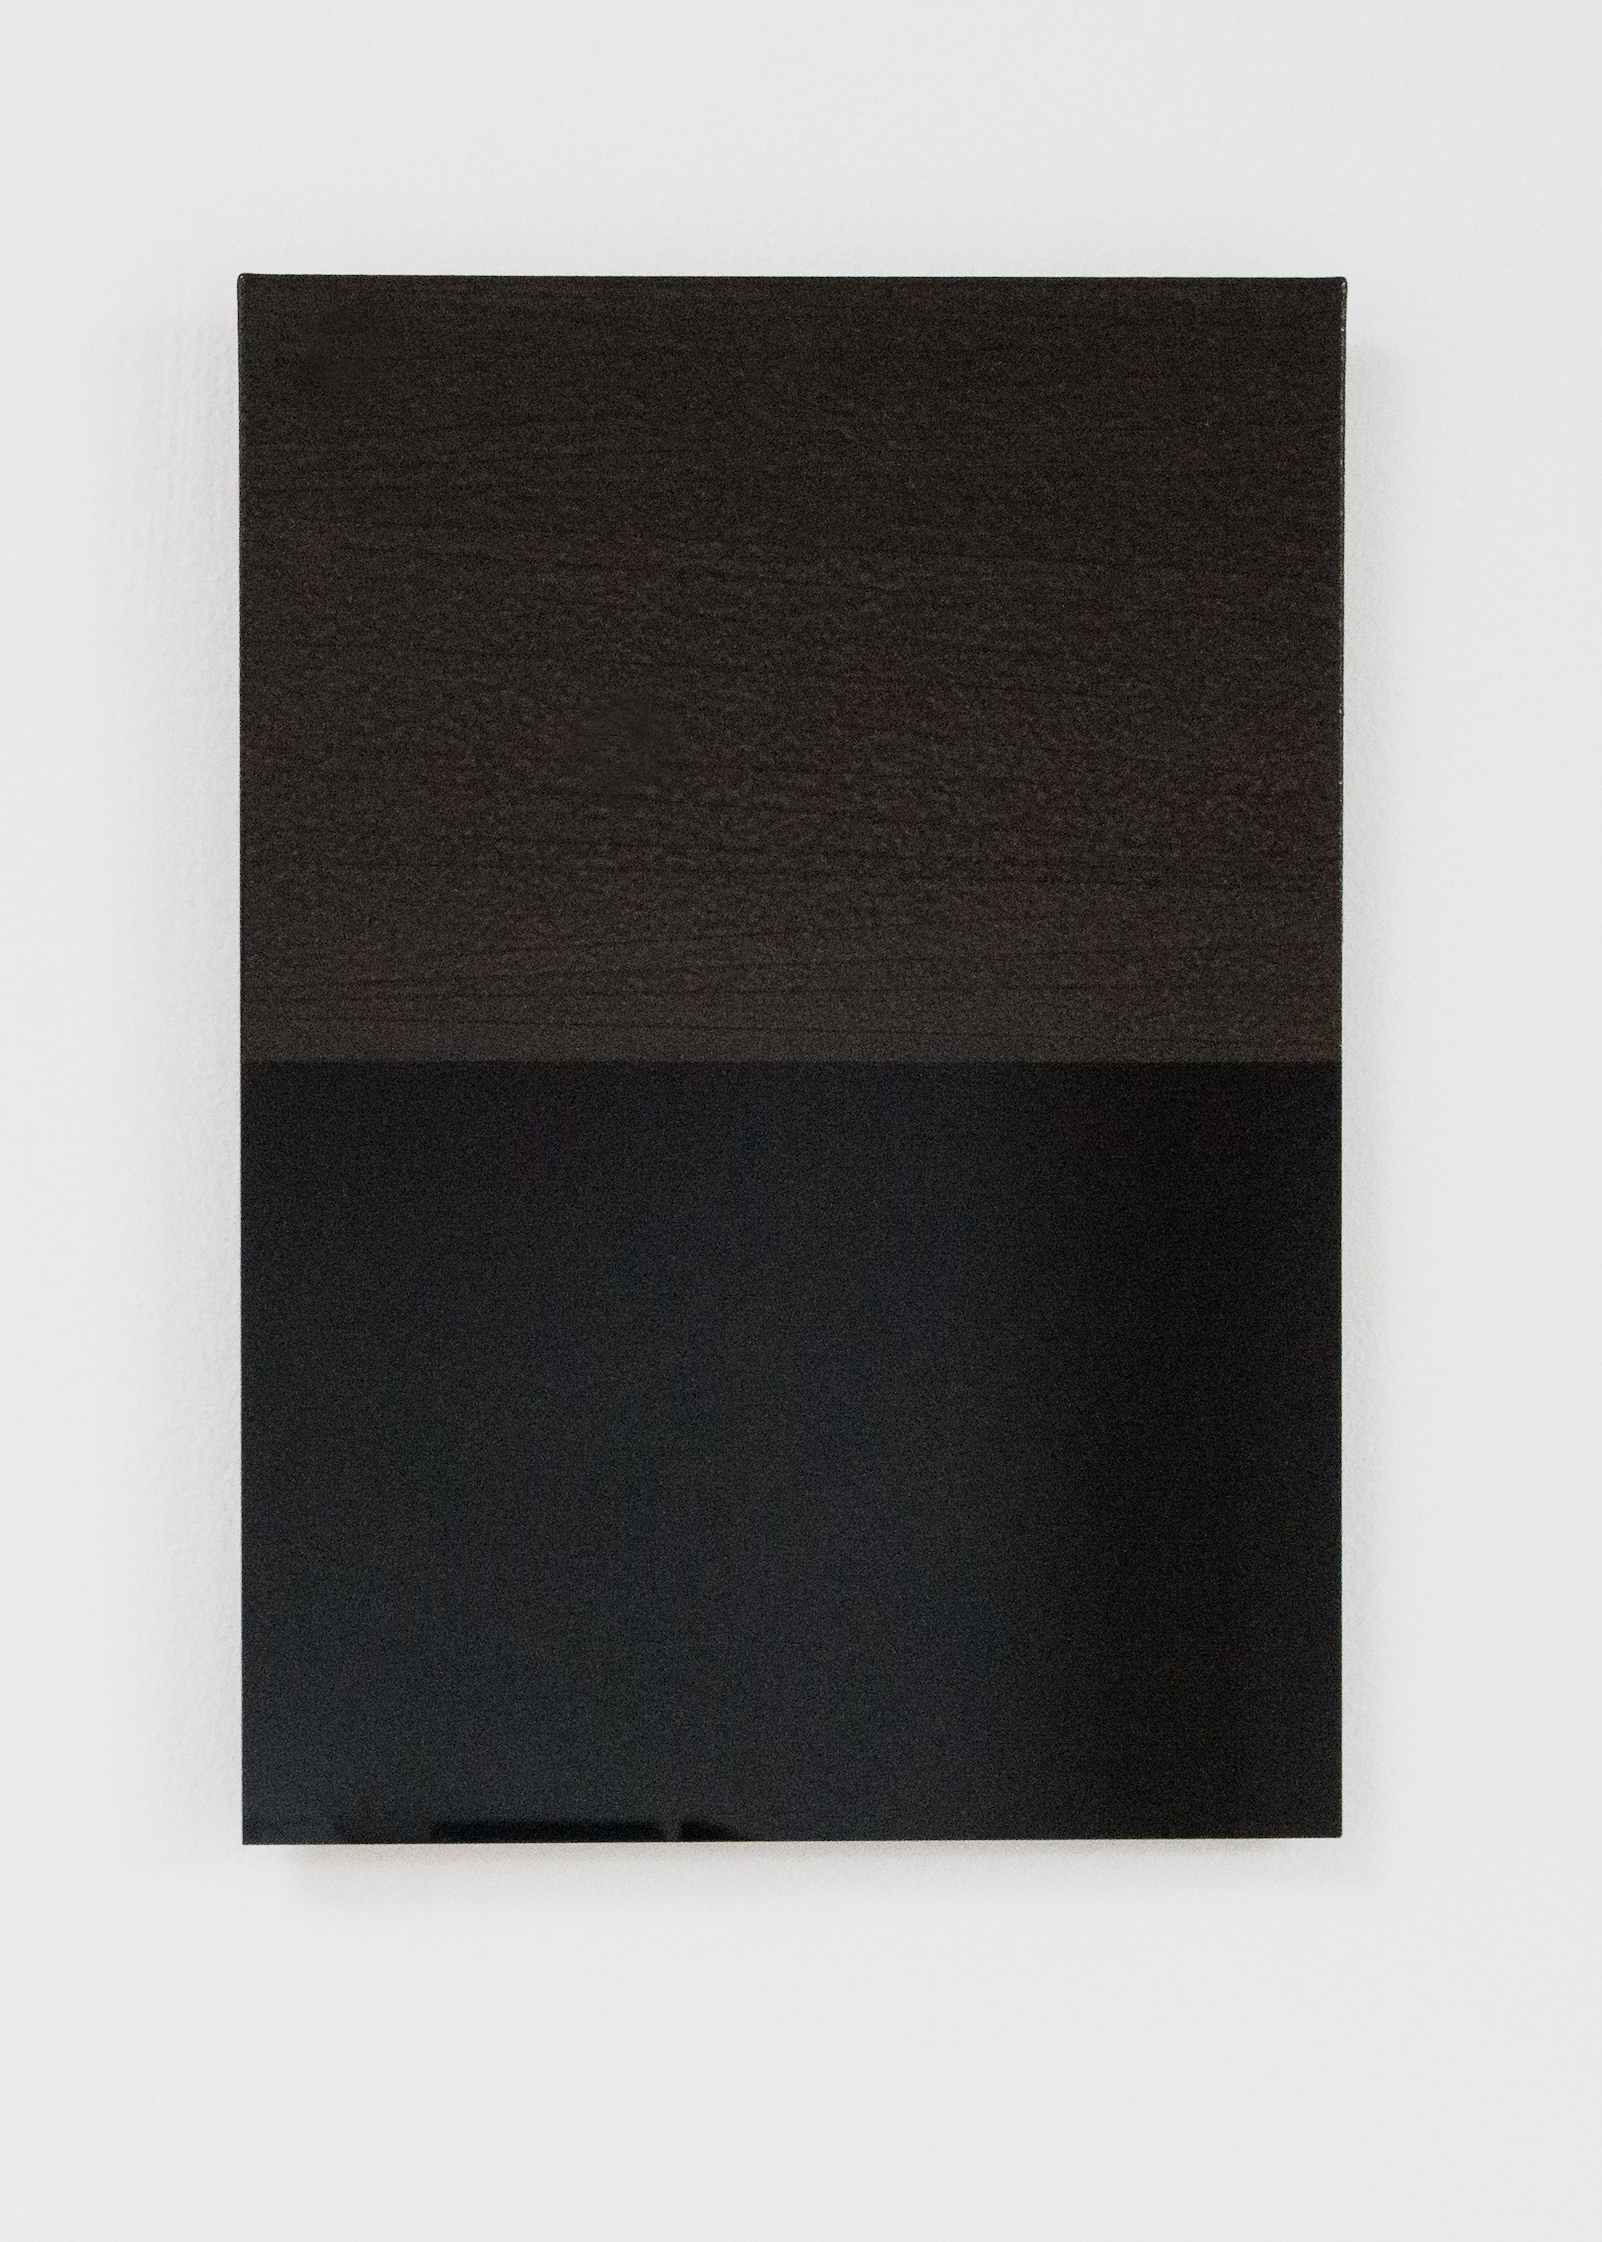 Anders Sletvold Moe. Black Letter Series, 2014. Oil and acrylic on plexi glass. 8.27 x 11.69